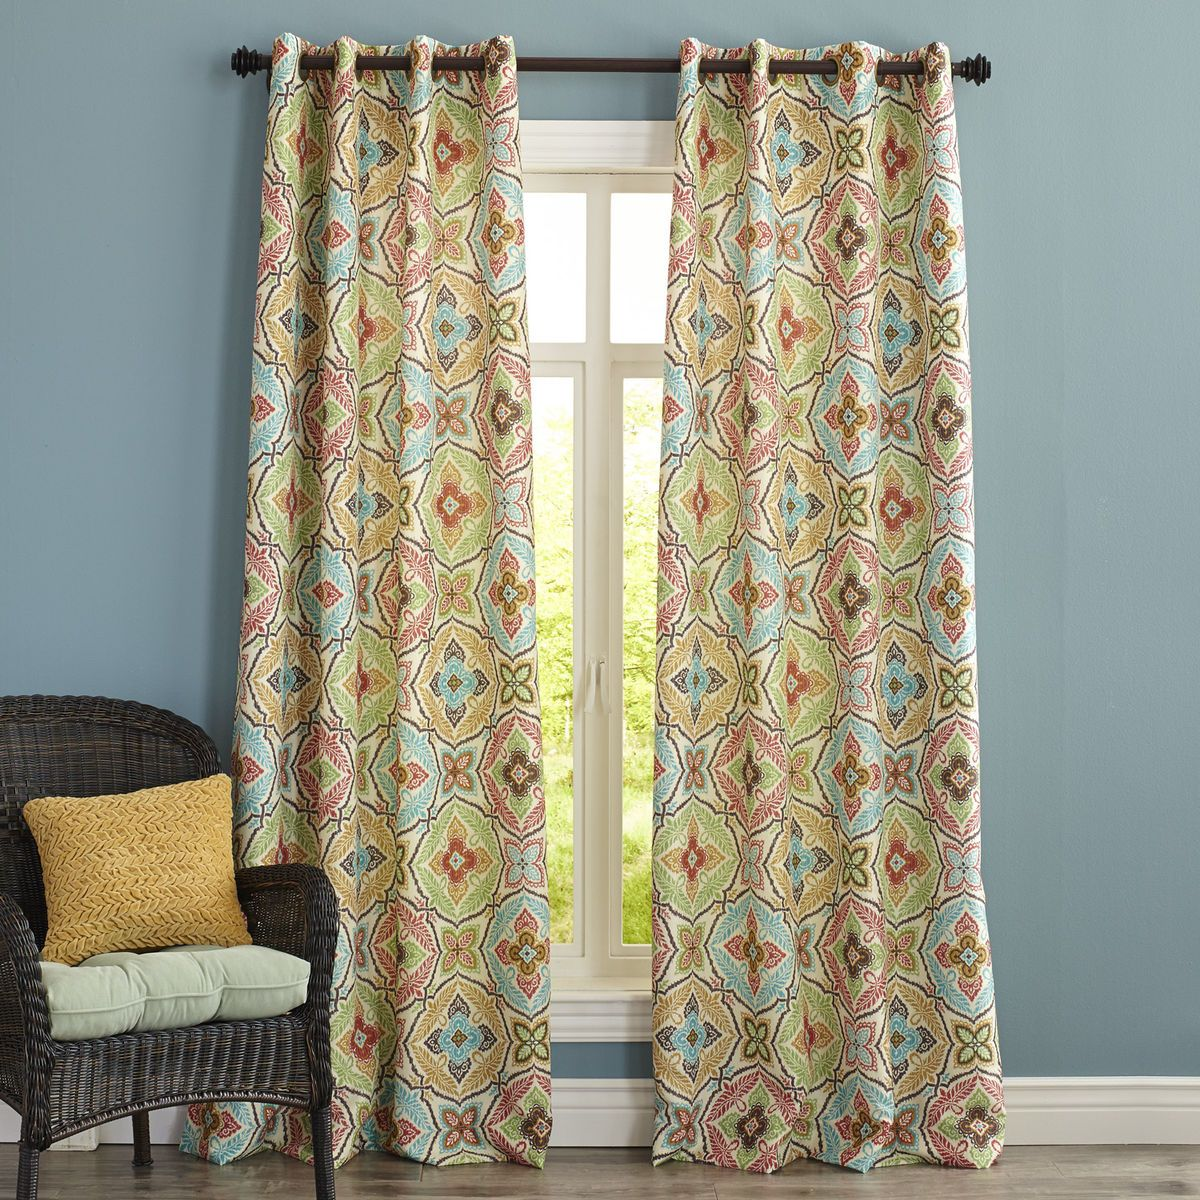 Kaleidoscope Curtain  Pier 1 Imports  1805 South Park  Curtains Curtain patterns Grommet